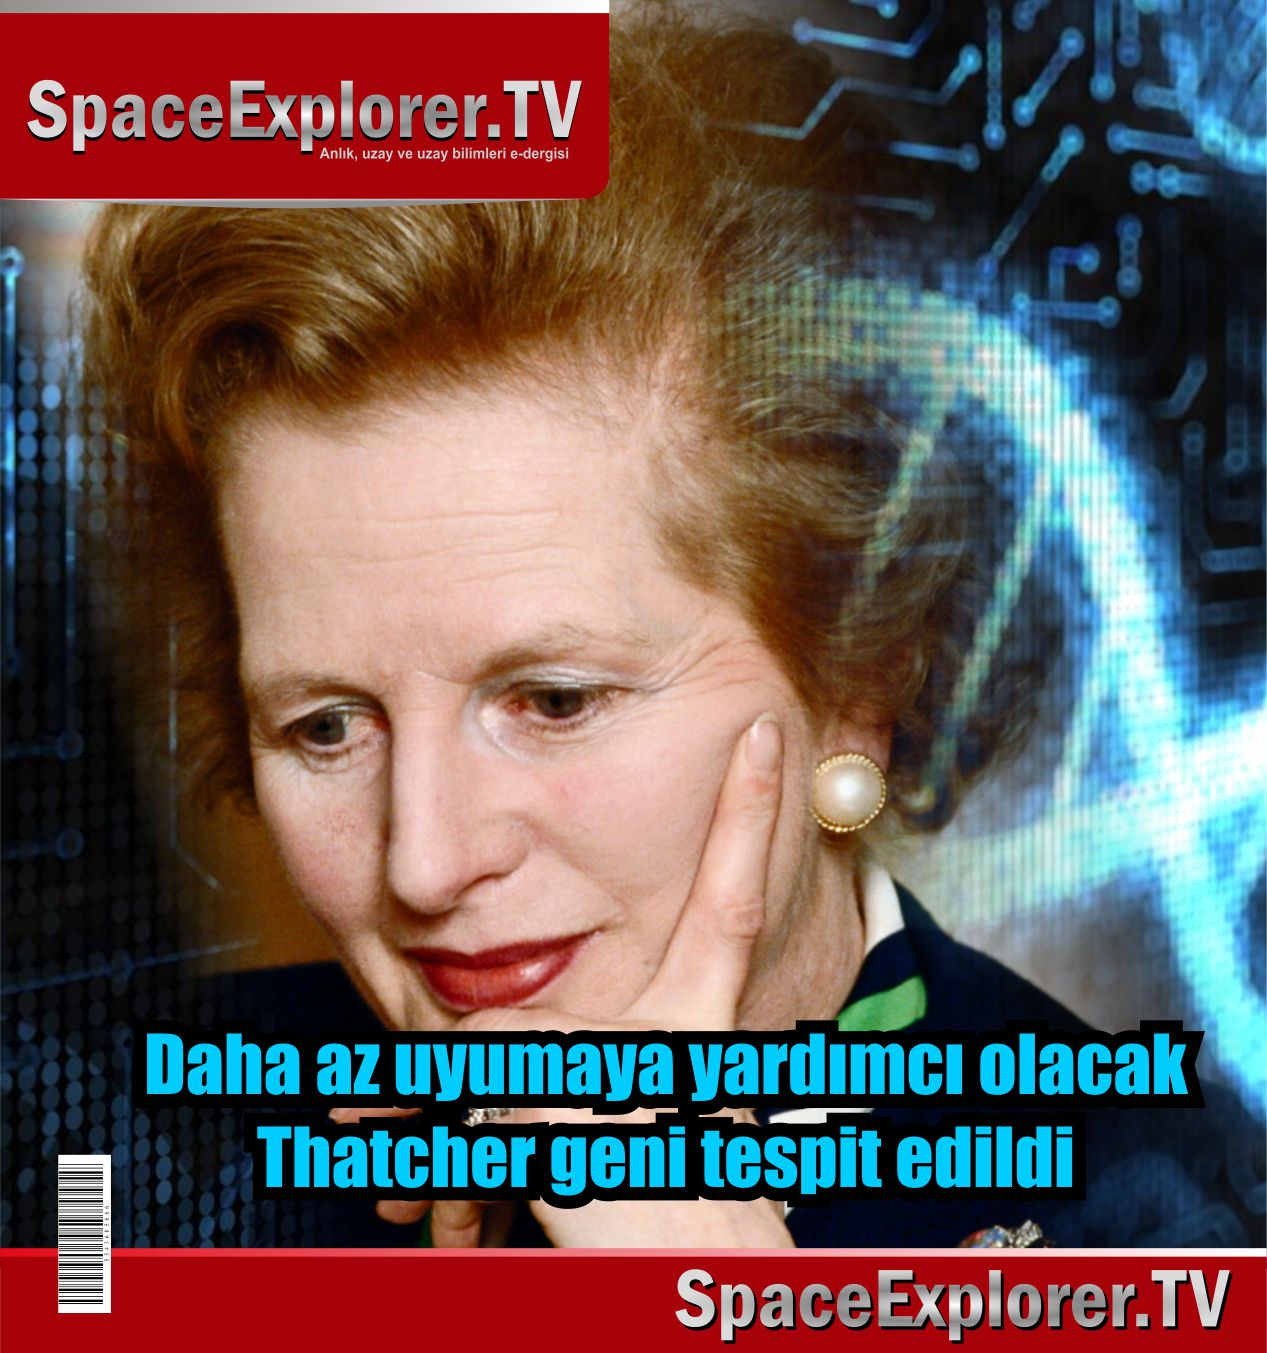 Thatcher geni, Uyku, Genetik bilimi, Space Explorer, DNA,